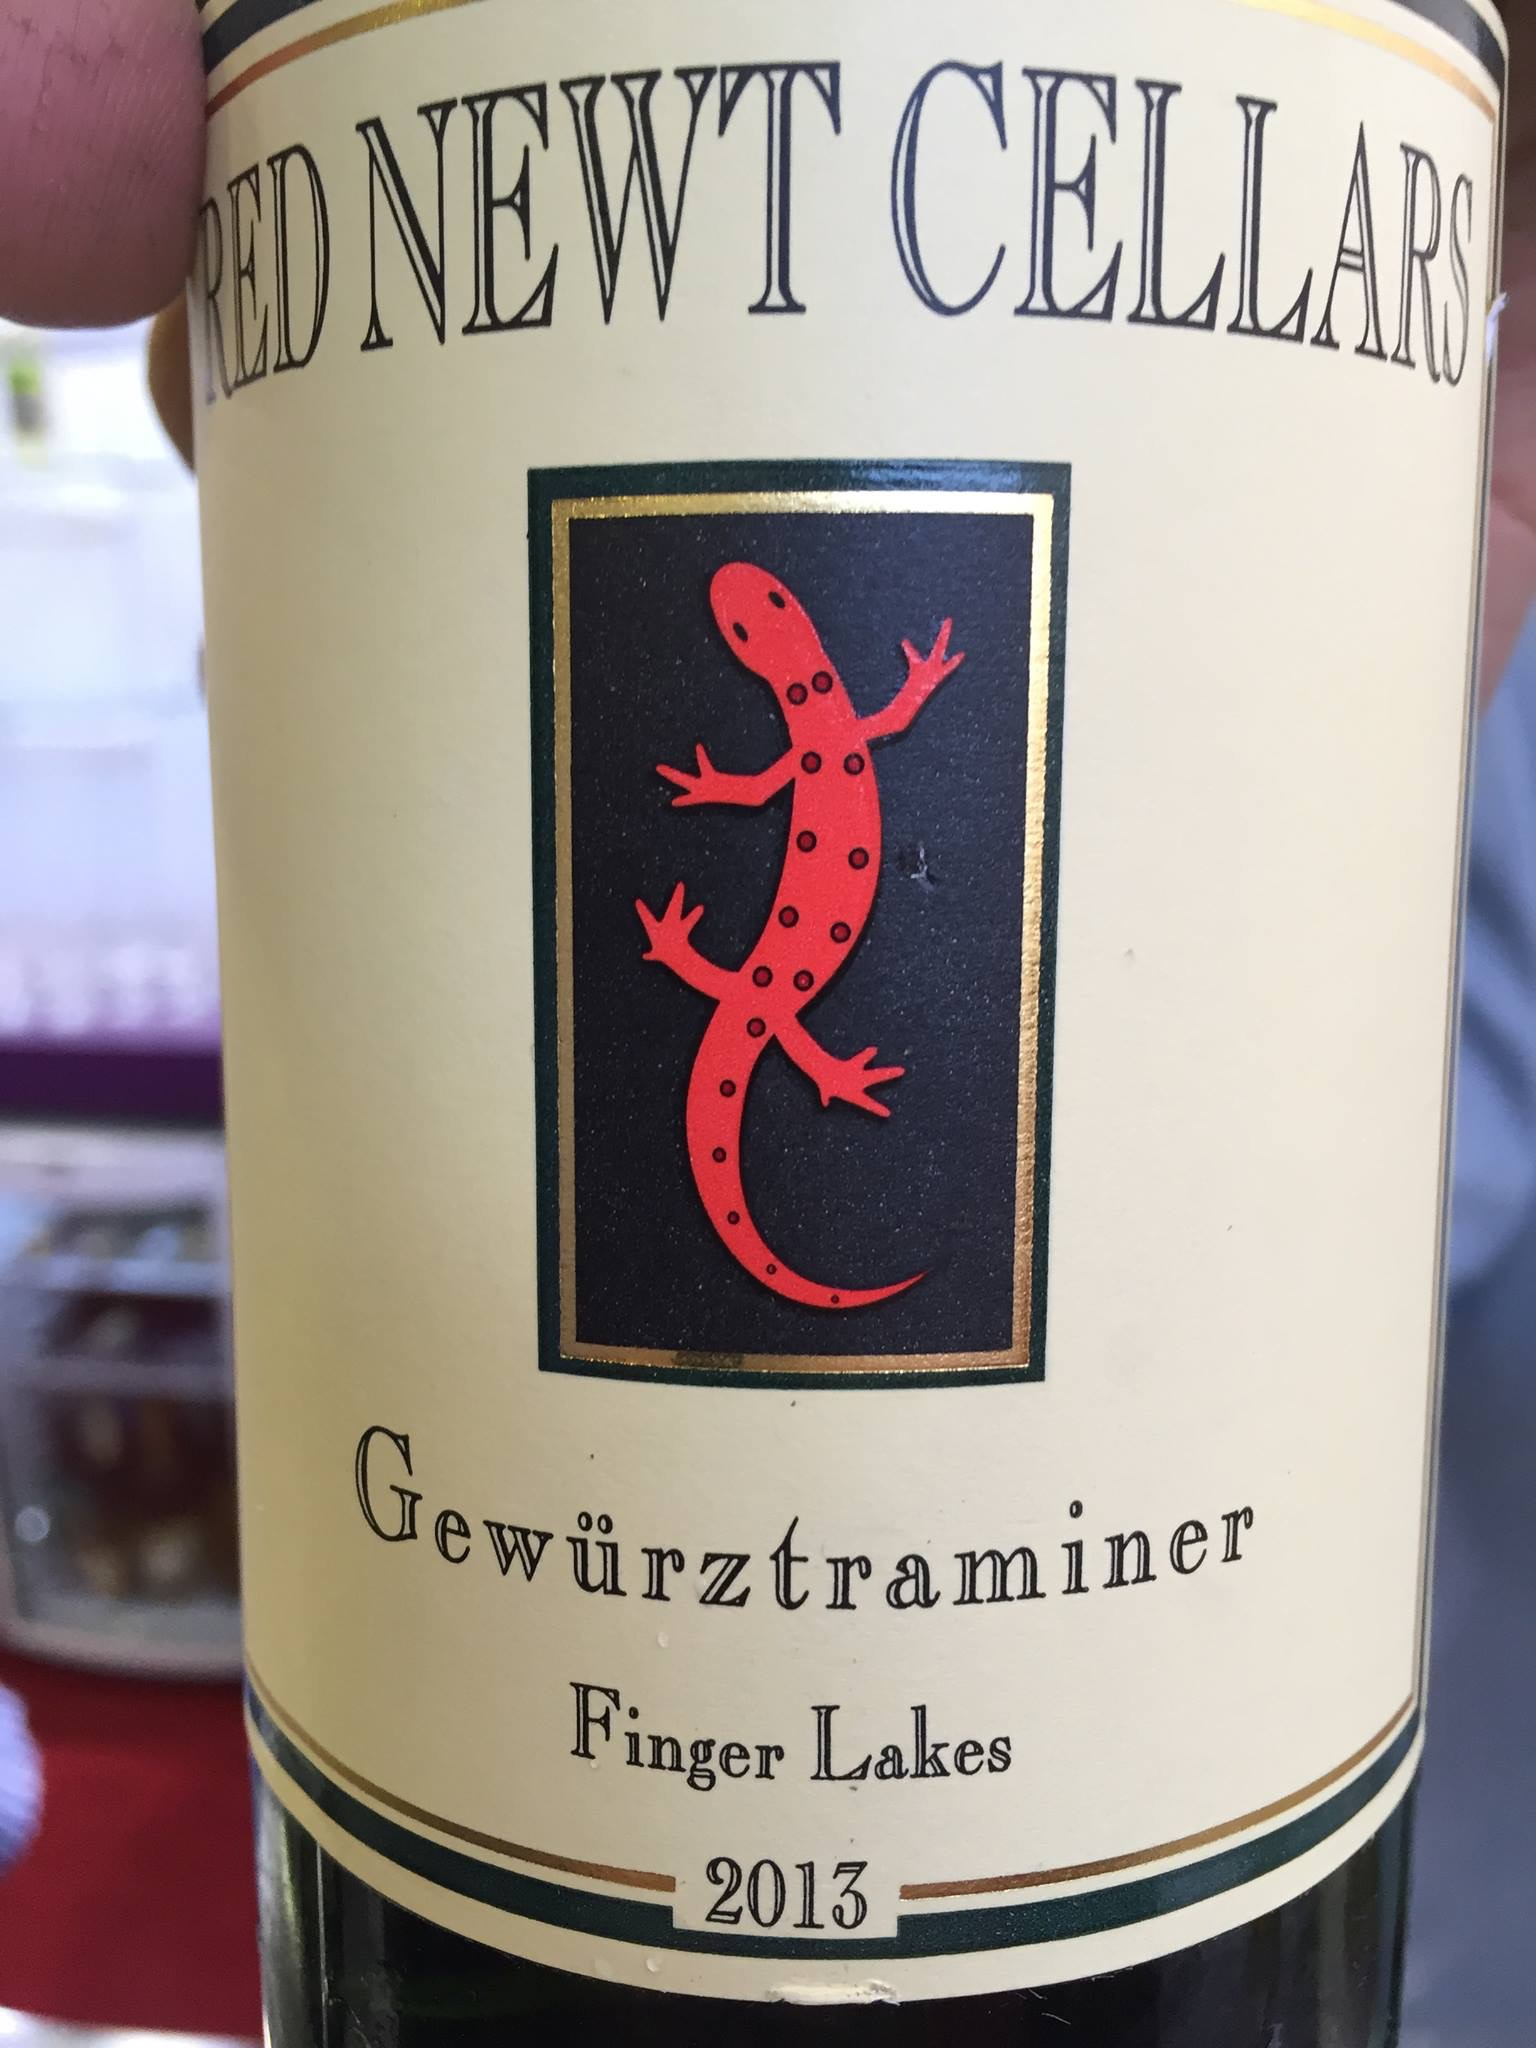 Red Newt Cellars – Gewürztraminer 2013 – Finger Lakes